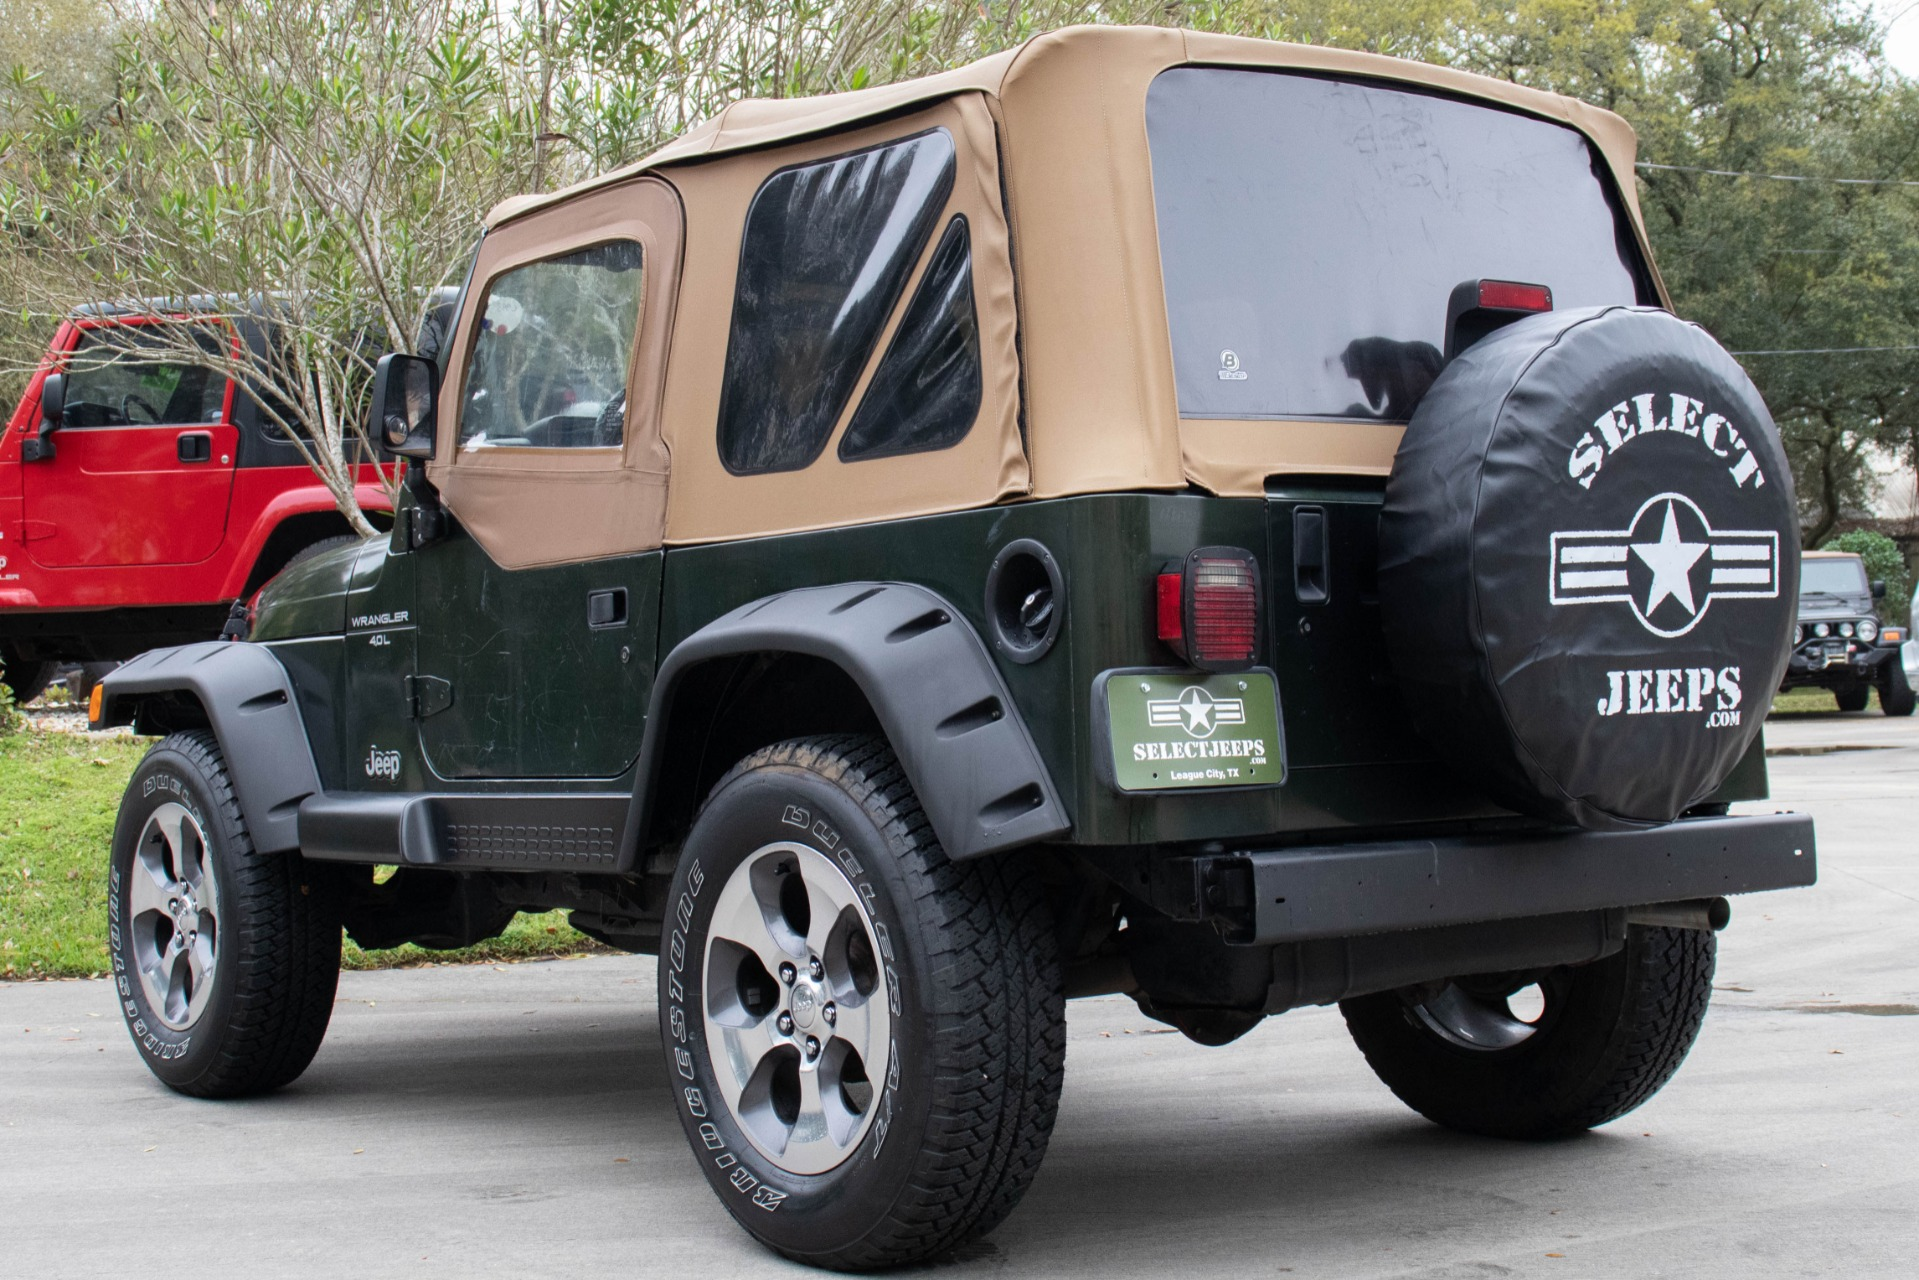 Used 1998 Jeep Wrangler Sport For Sale ($7,995) | Select ...